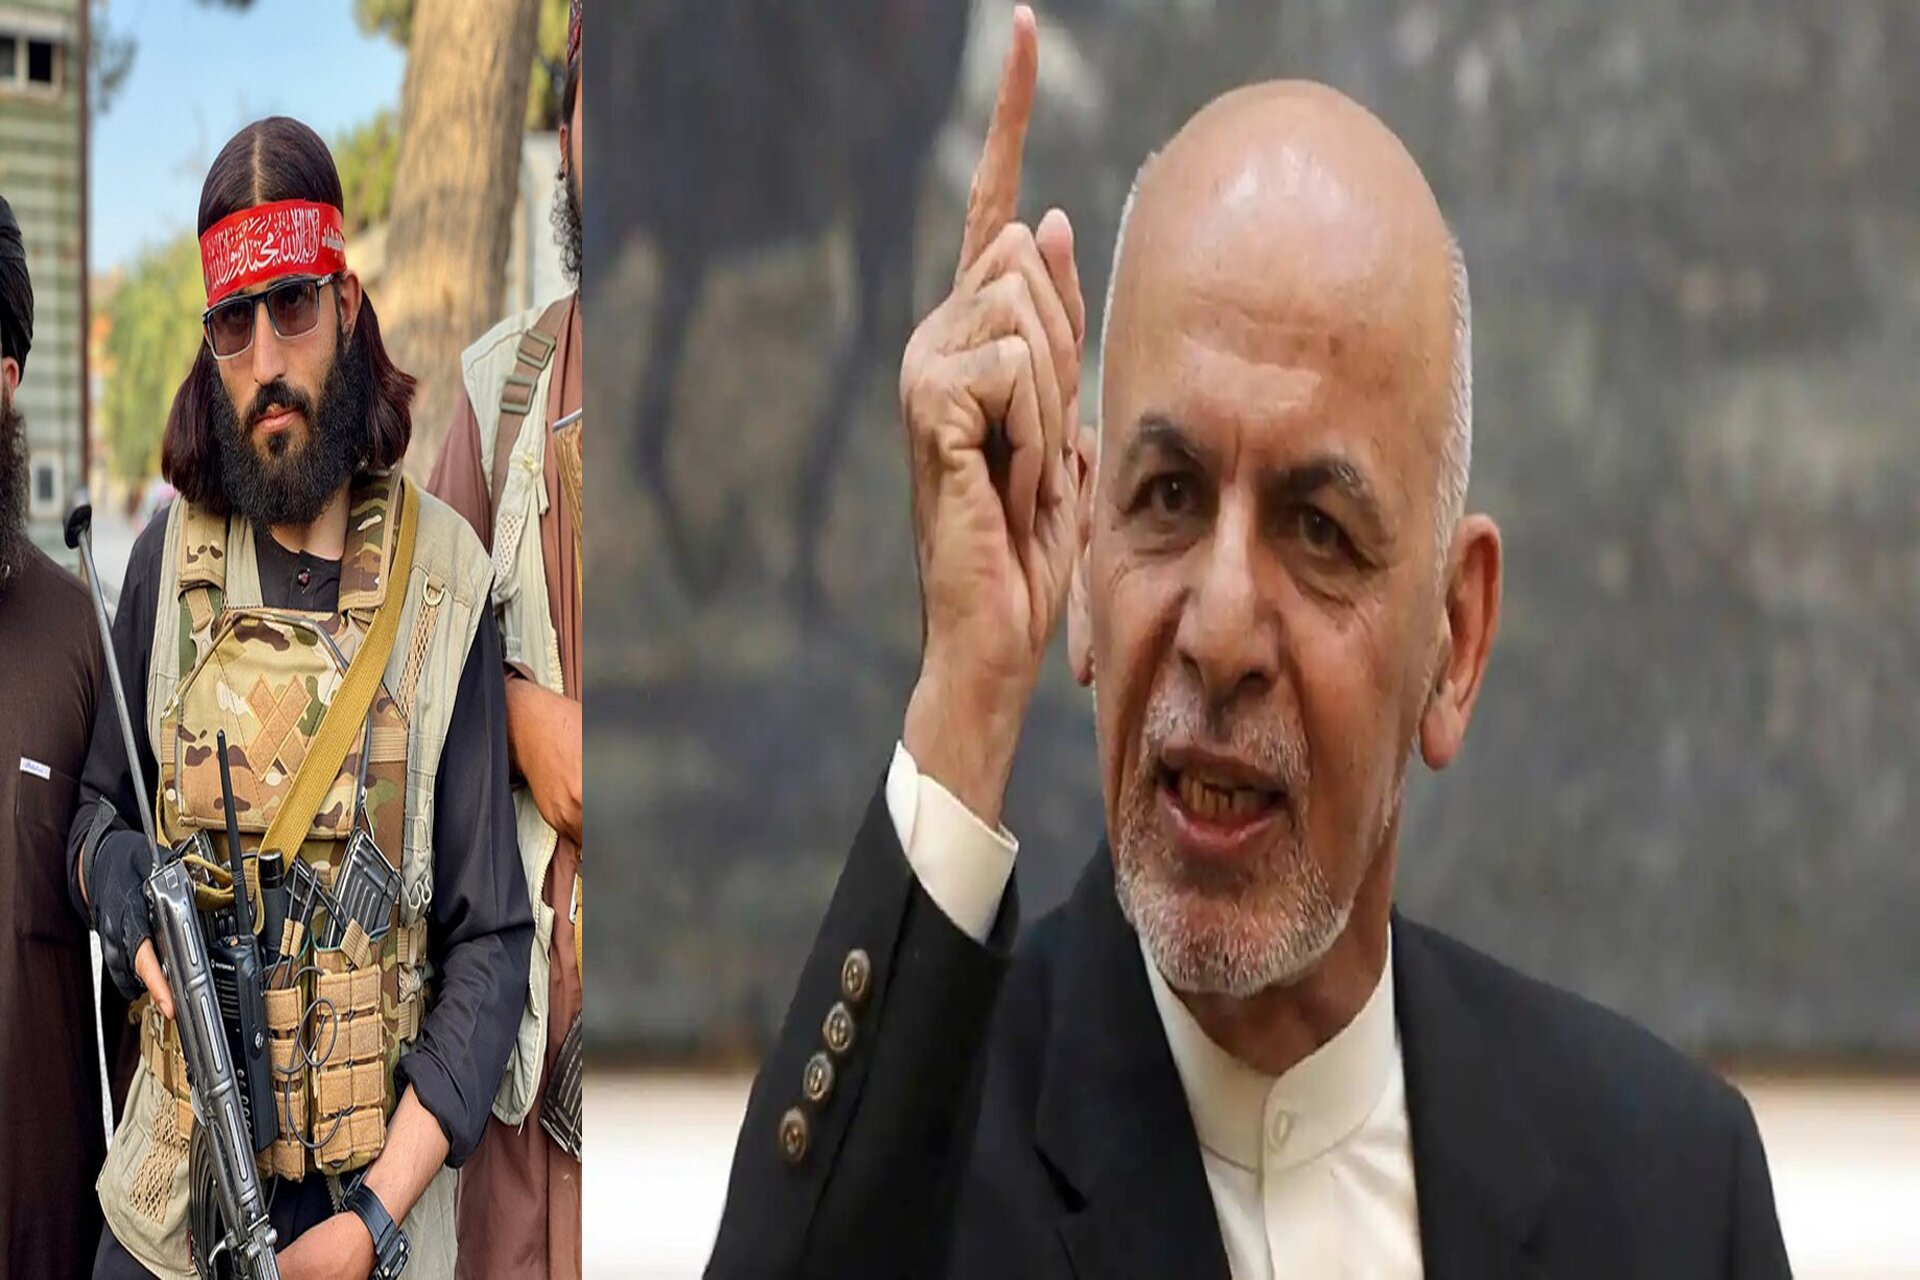 Afghanistan-Former-President-Ashraf-Ghani-Flee-To-Unknown-Destination-With-Helicopter-Full-Of-Cash-and-Four-Cars.jpg